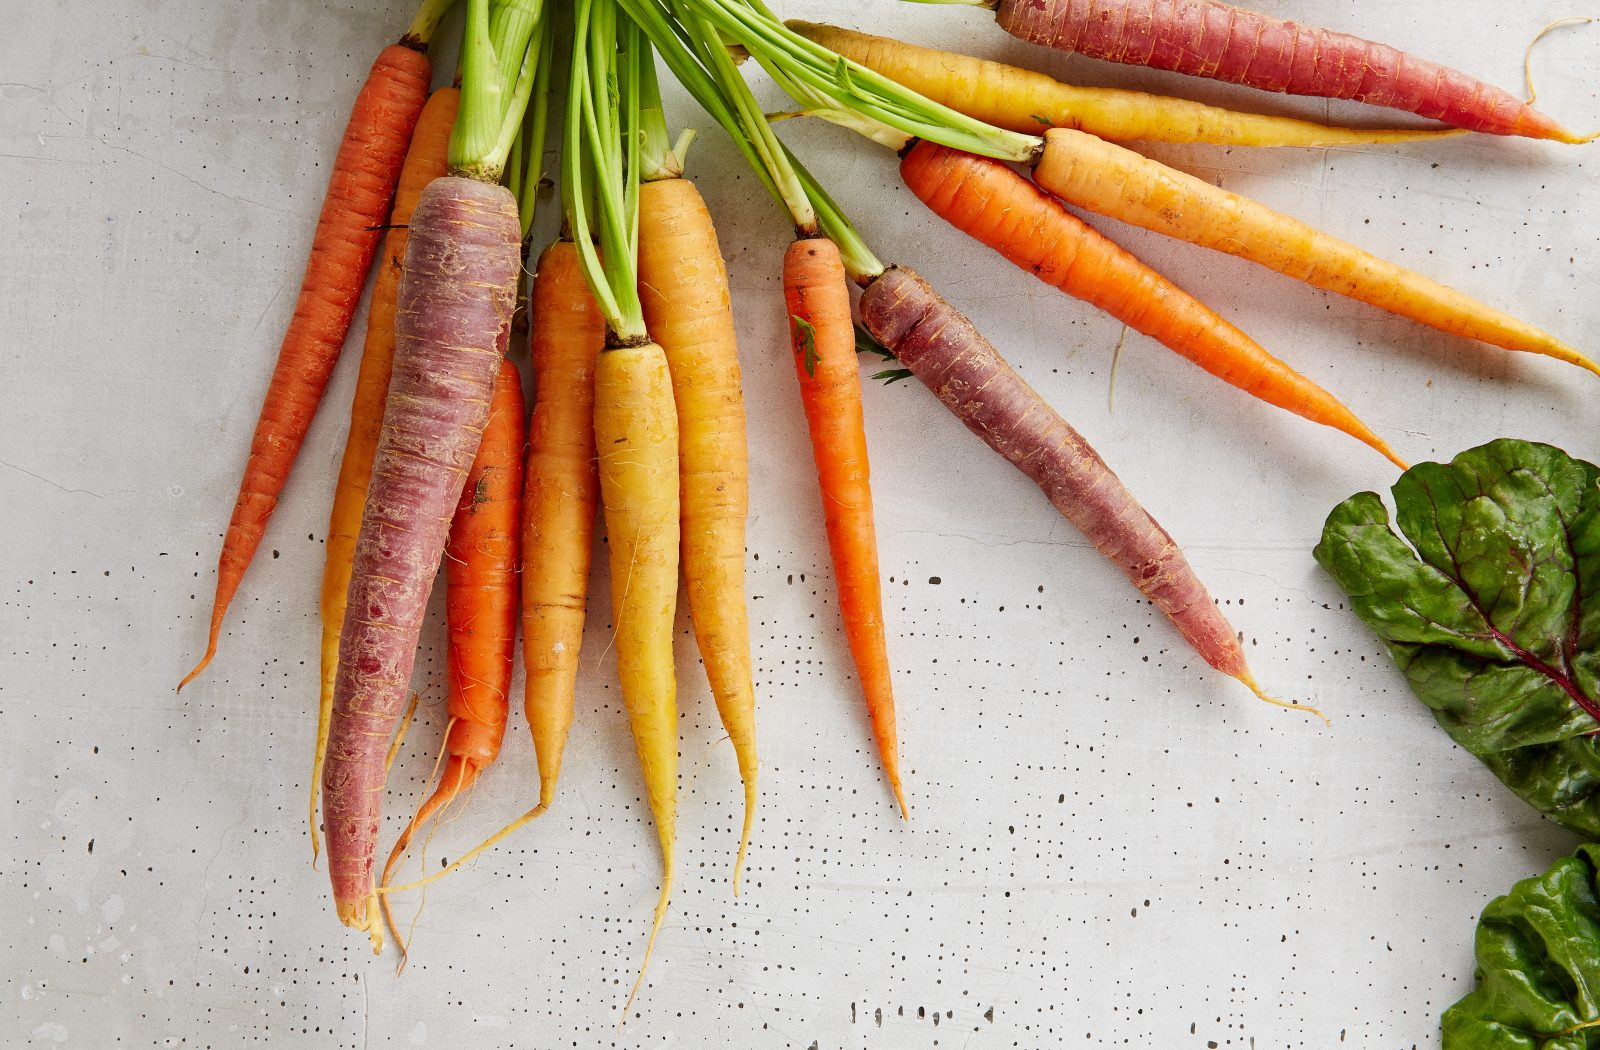 Can Carrots Cure Cancer?